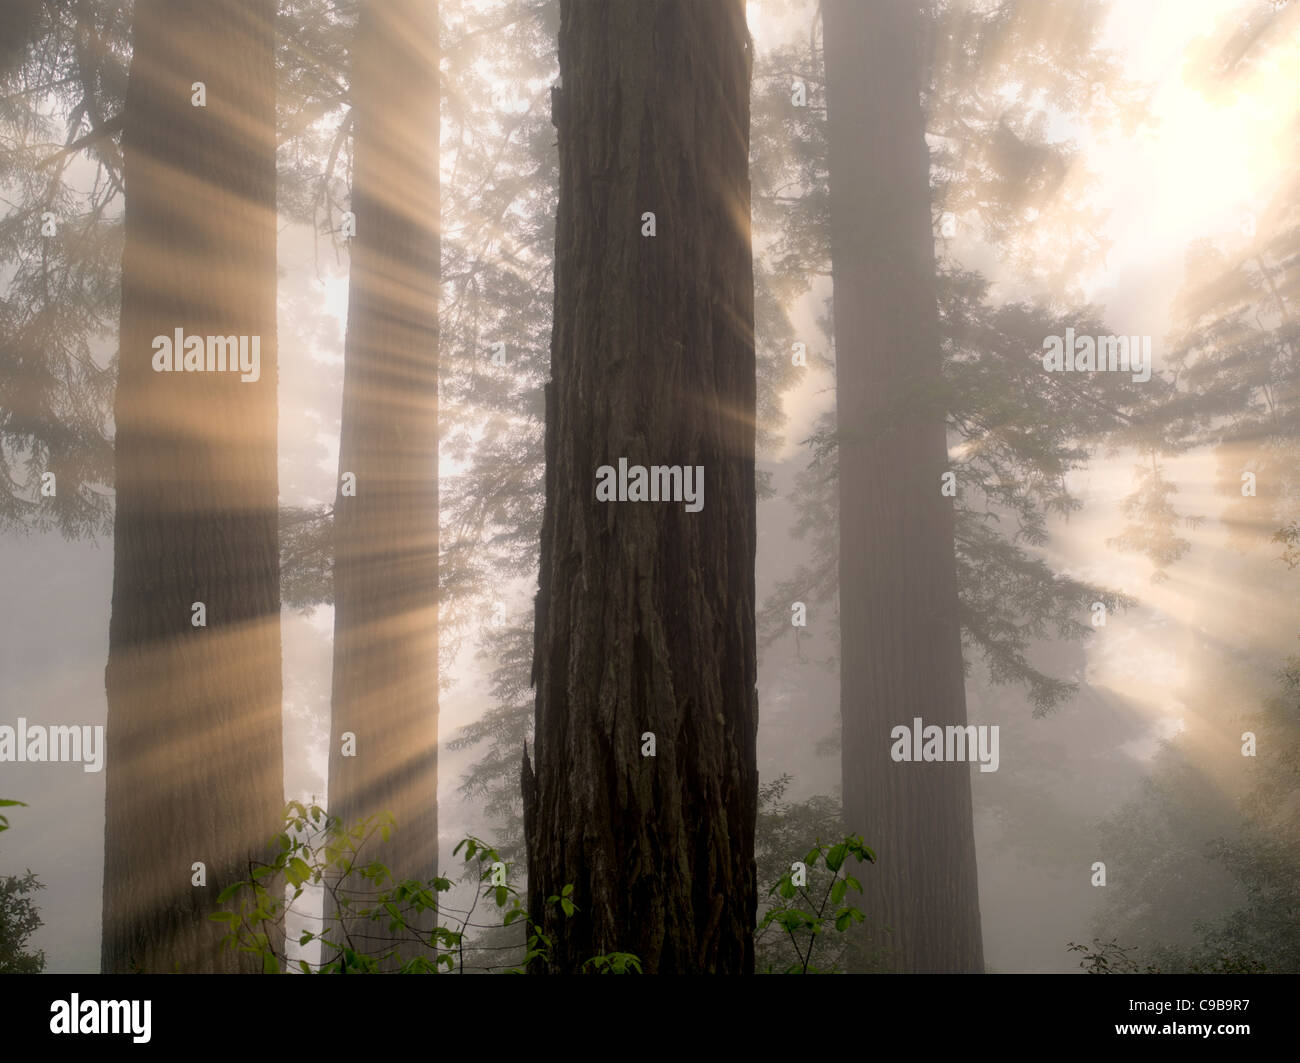 Redwood trees in Lady Bird Johnson Grove. Redwood National and State Parks, California - Stock Image